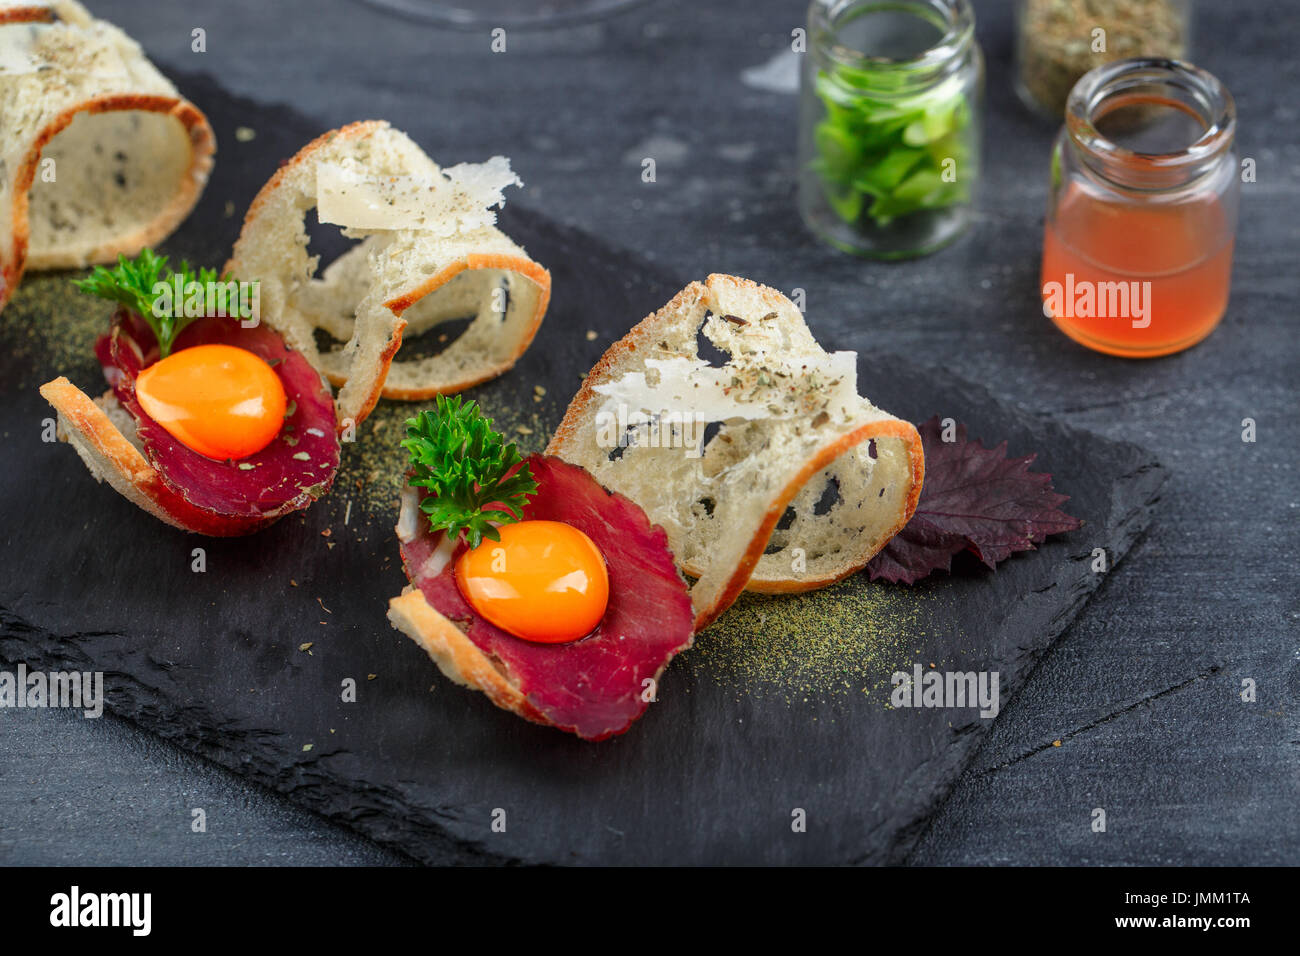 Cured beef on crusty bread with yolk and parmedgano cheese - Stock Image